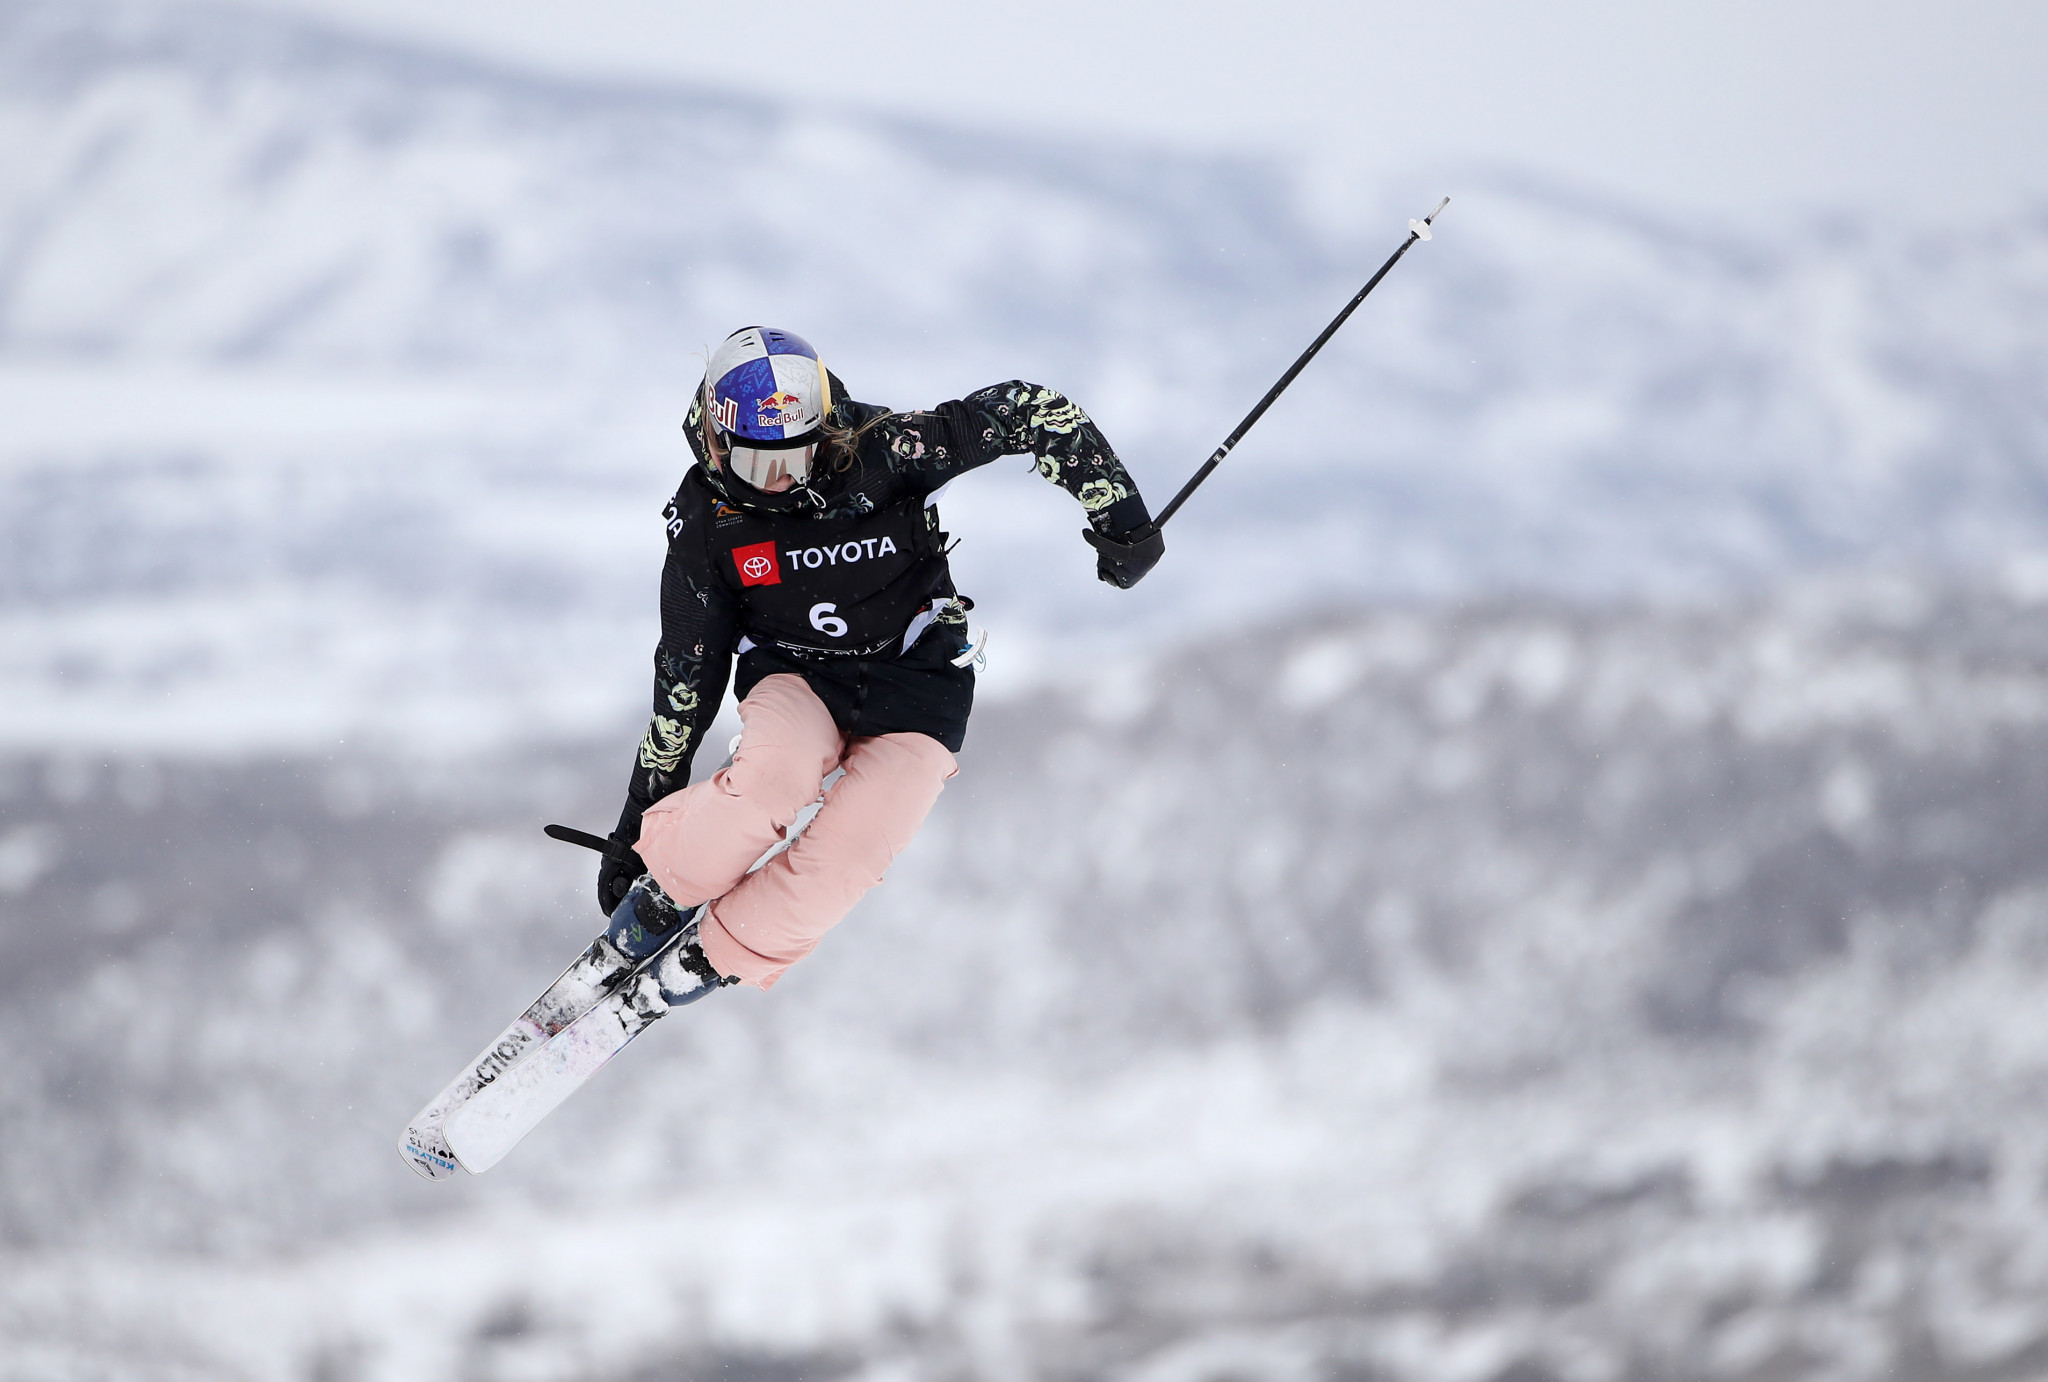 Sildaru tops women's qualification at FIS Freeski Slopestyle World Cup in Stubai